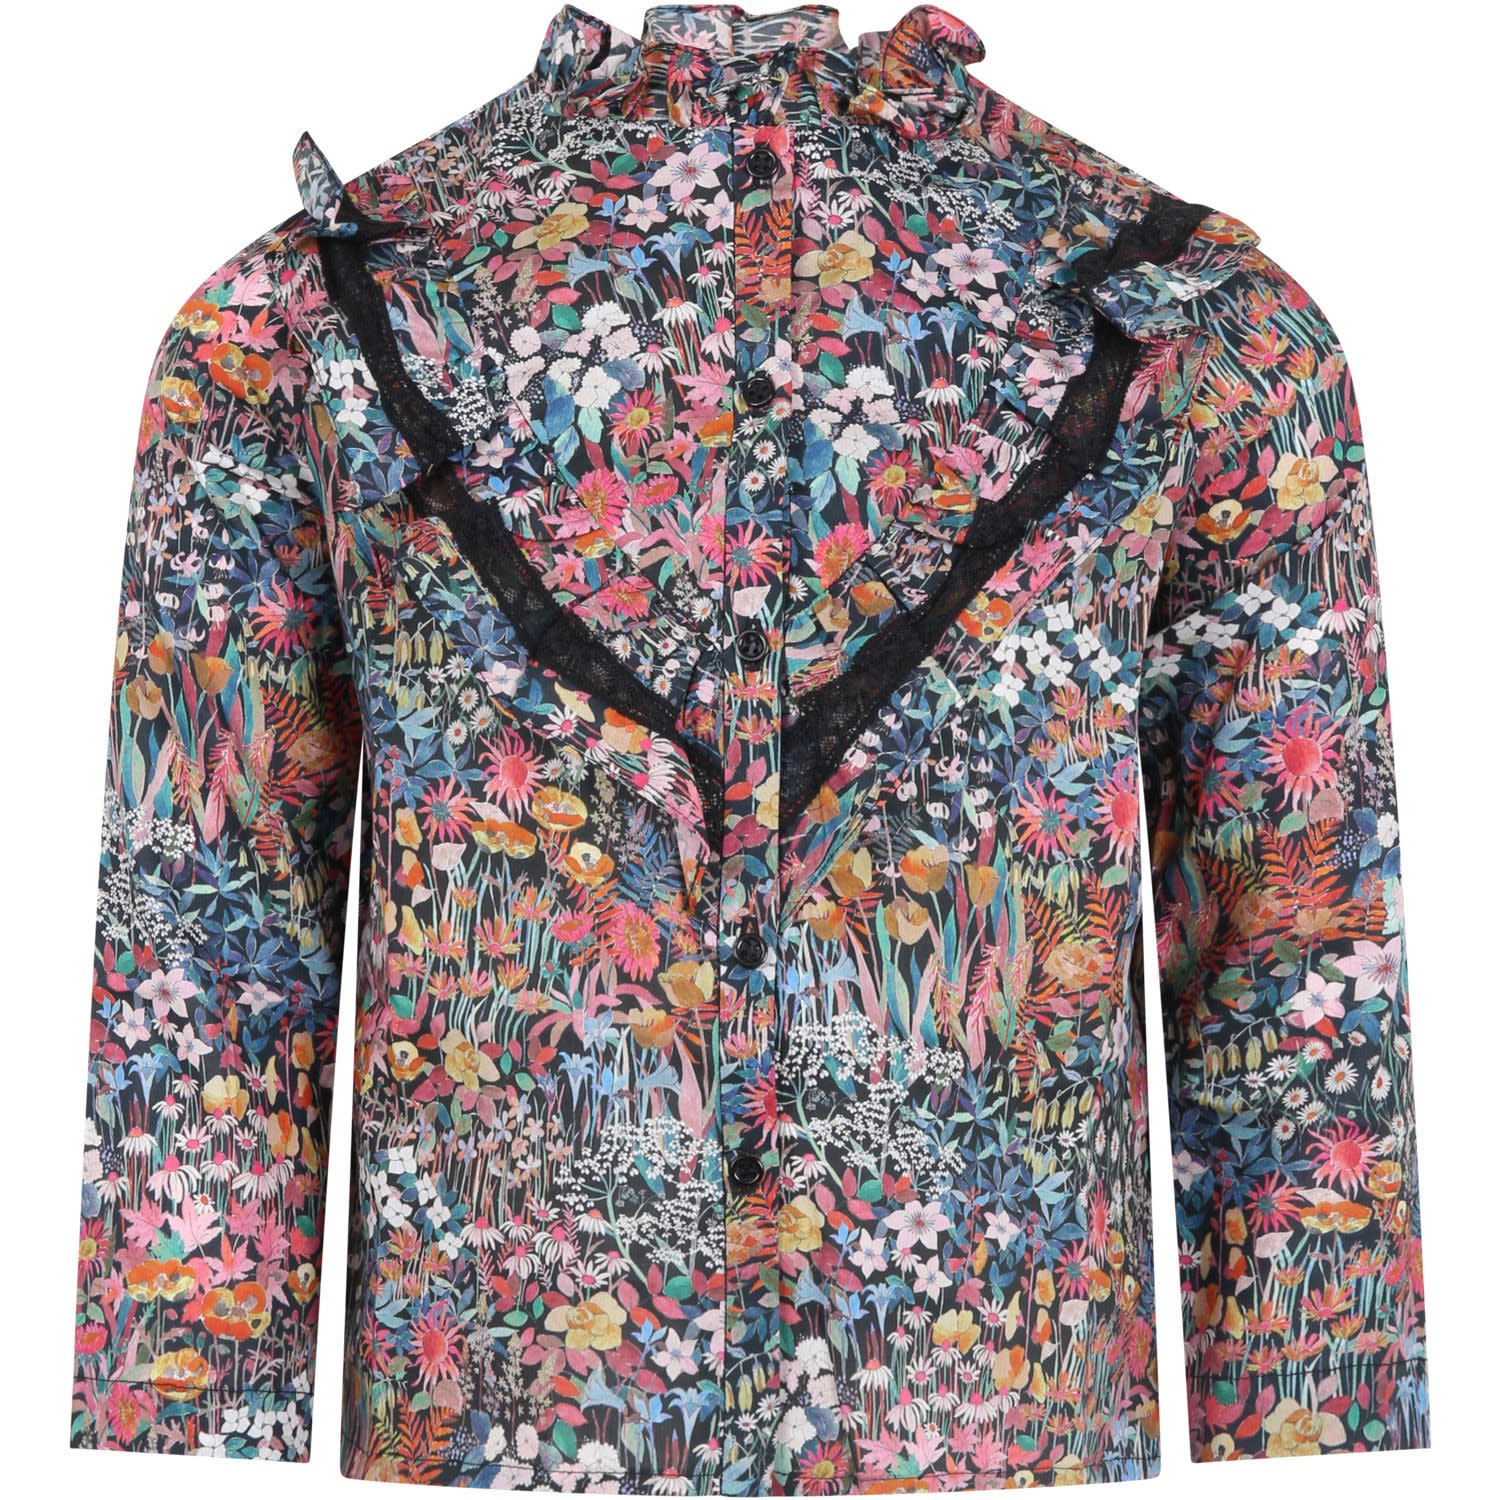 Blue Shirt For Girl With Flower